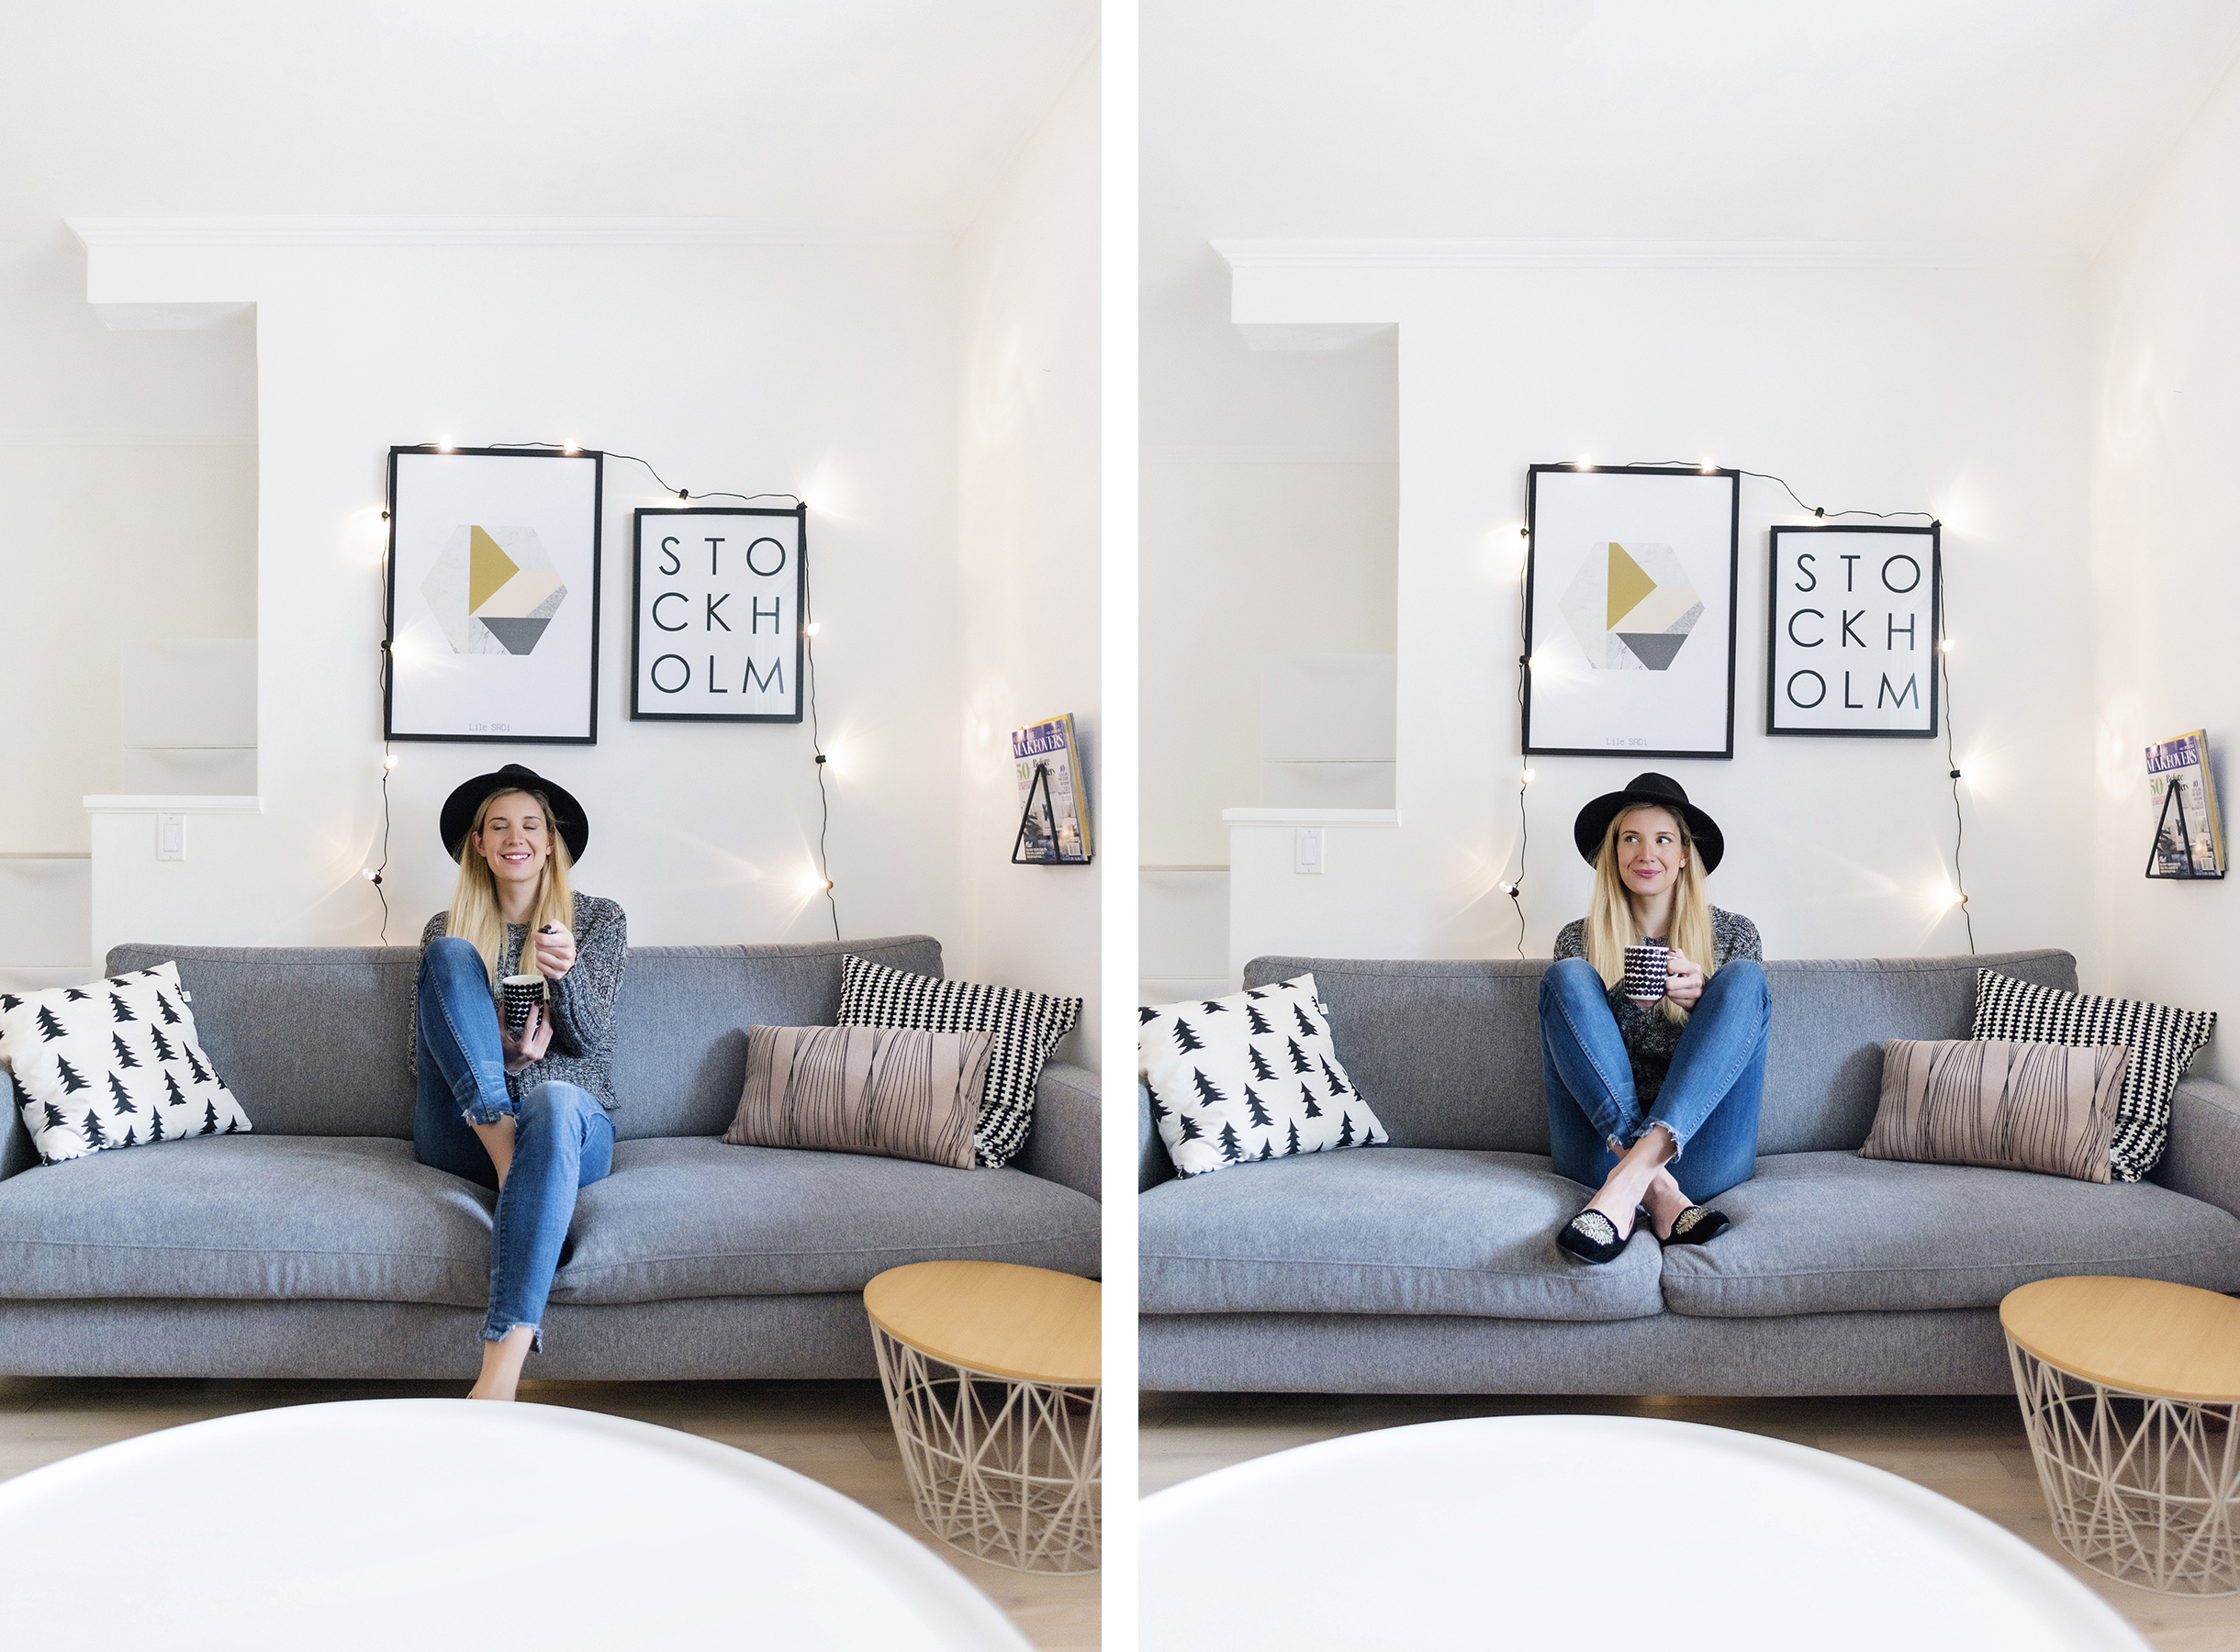 Self-Portrait Photography Tips for Instagram